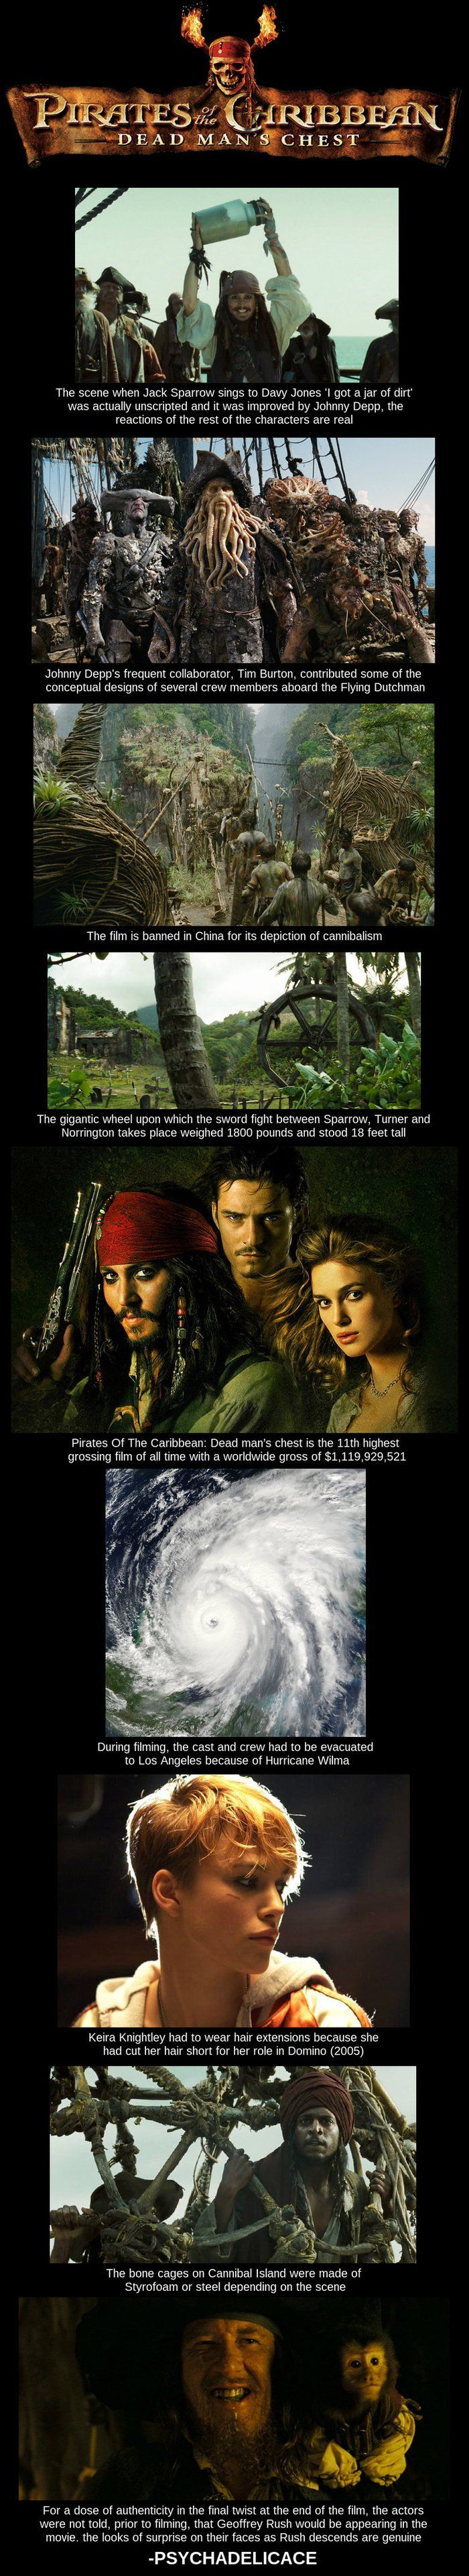 Pirates of the Caribbean Facts. THAT LAST ONE IS SO AWESOME OMG!